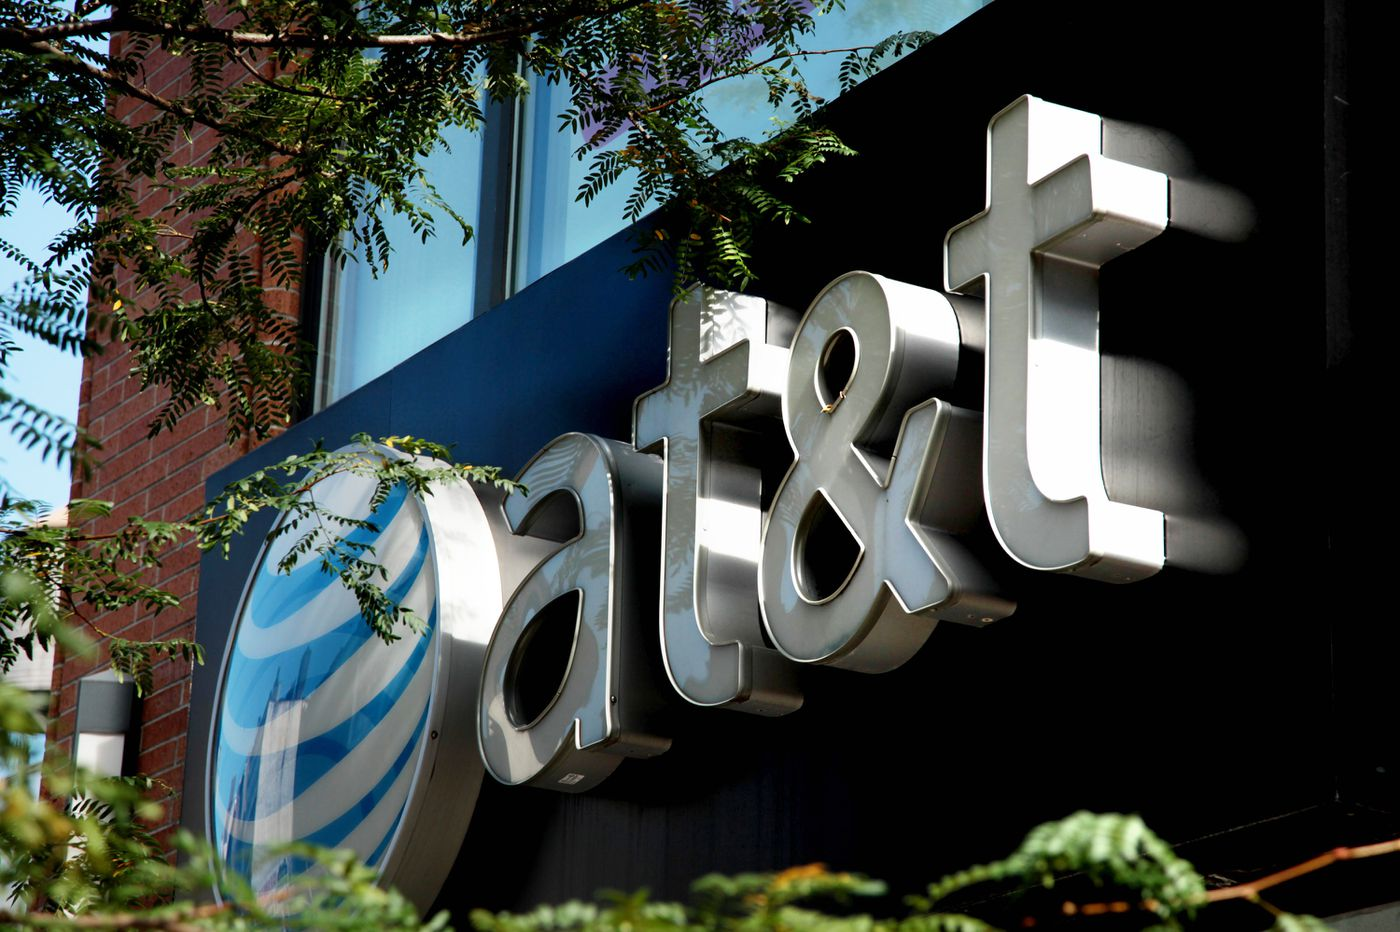 AT&T, T-Mobile to stop selling location of customers to third parties